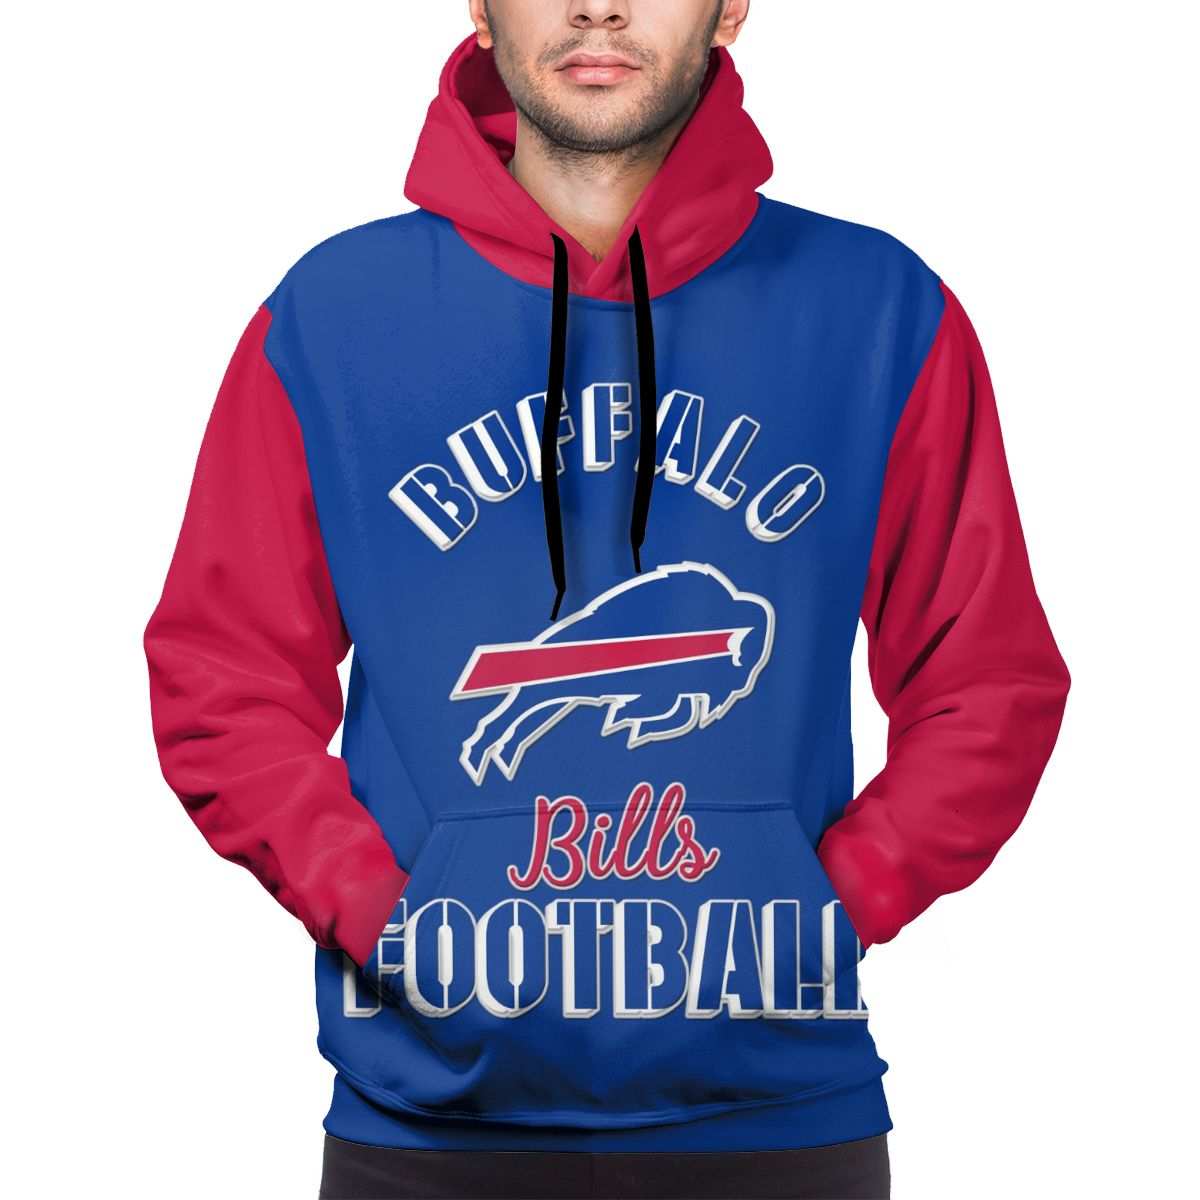 Bills Football Team Customize Hoodies For Men Pullover Sweatshirt